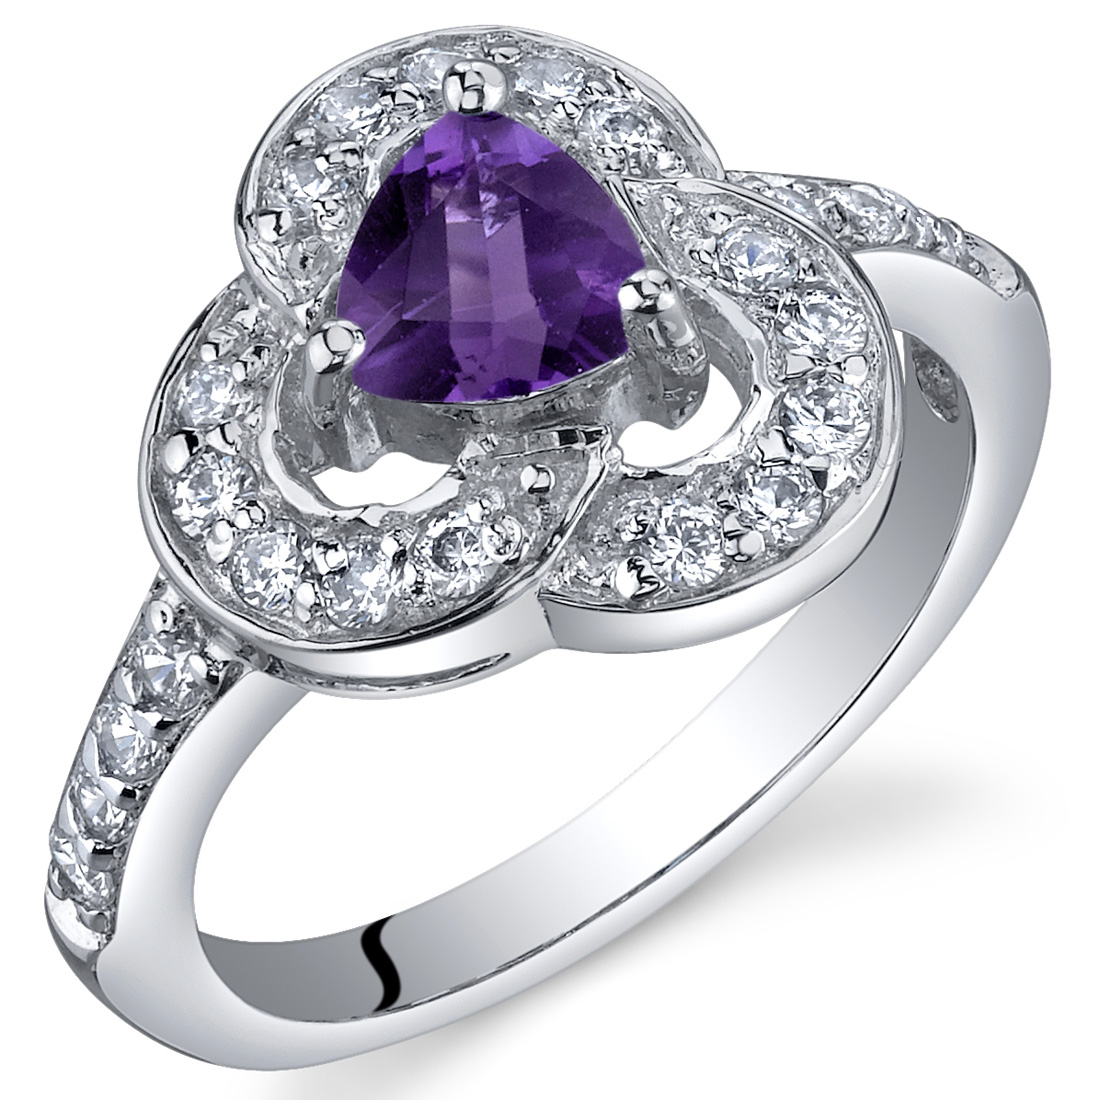 Trifecta of Beauty 0.50 Carats Amethyst Ring in Sterling Silver Available